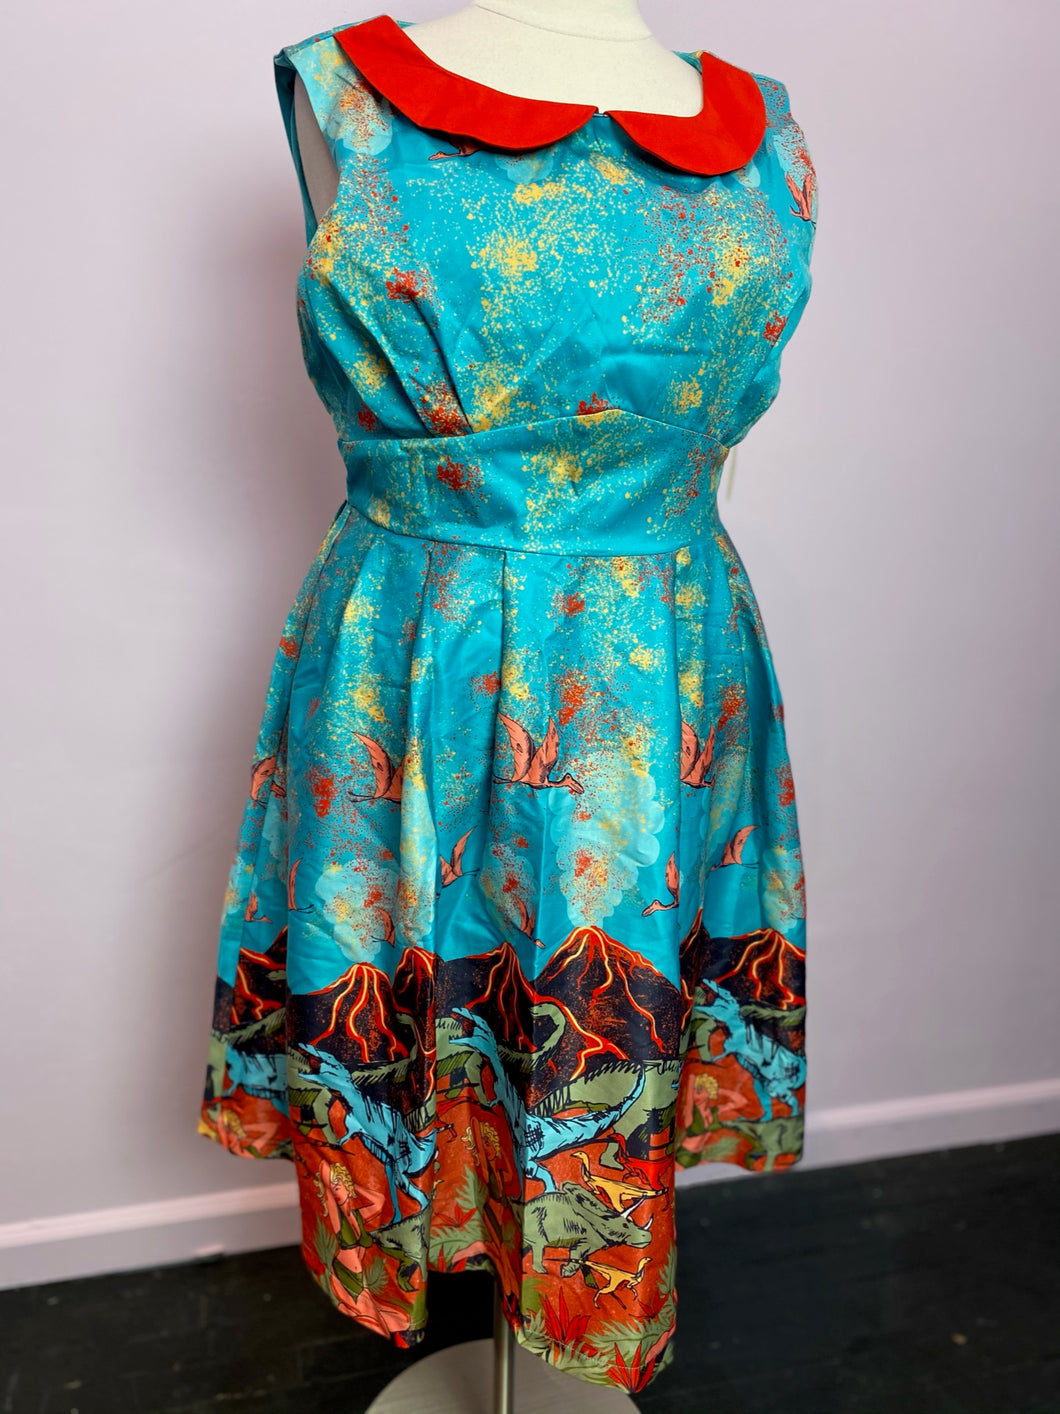 Electric Blue Dinosaur and Volcano Print Lindy Bop Retro Dress, Size 16